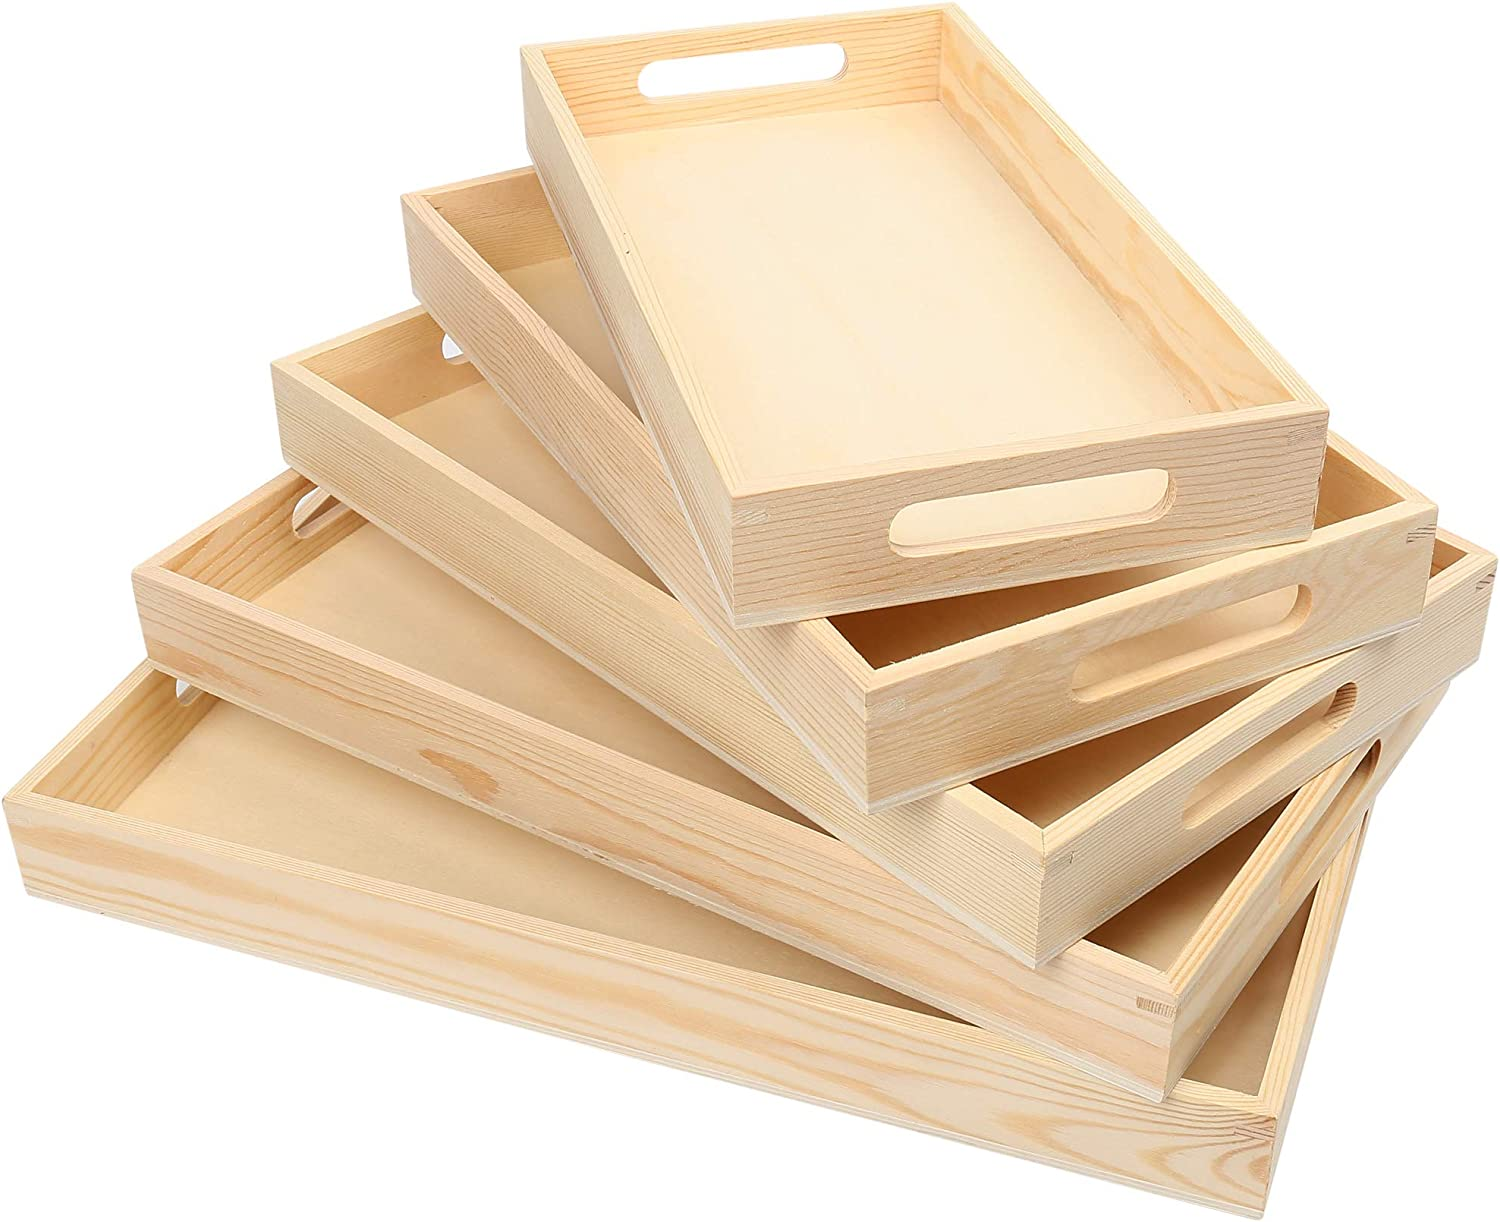 LotFancy 5PC Nesting Wood Trays, Natural Wooden Trays for Craft and Decor, Unfinished Wood Serving Trays with Handles, Organizer Food Tray for Breakfast, Lunch, Dinner